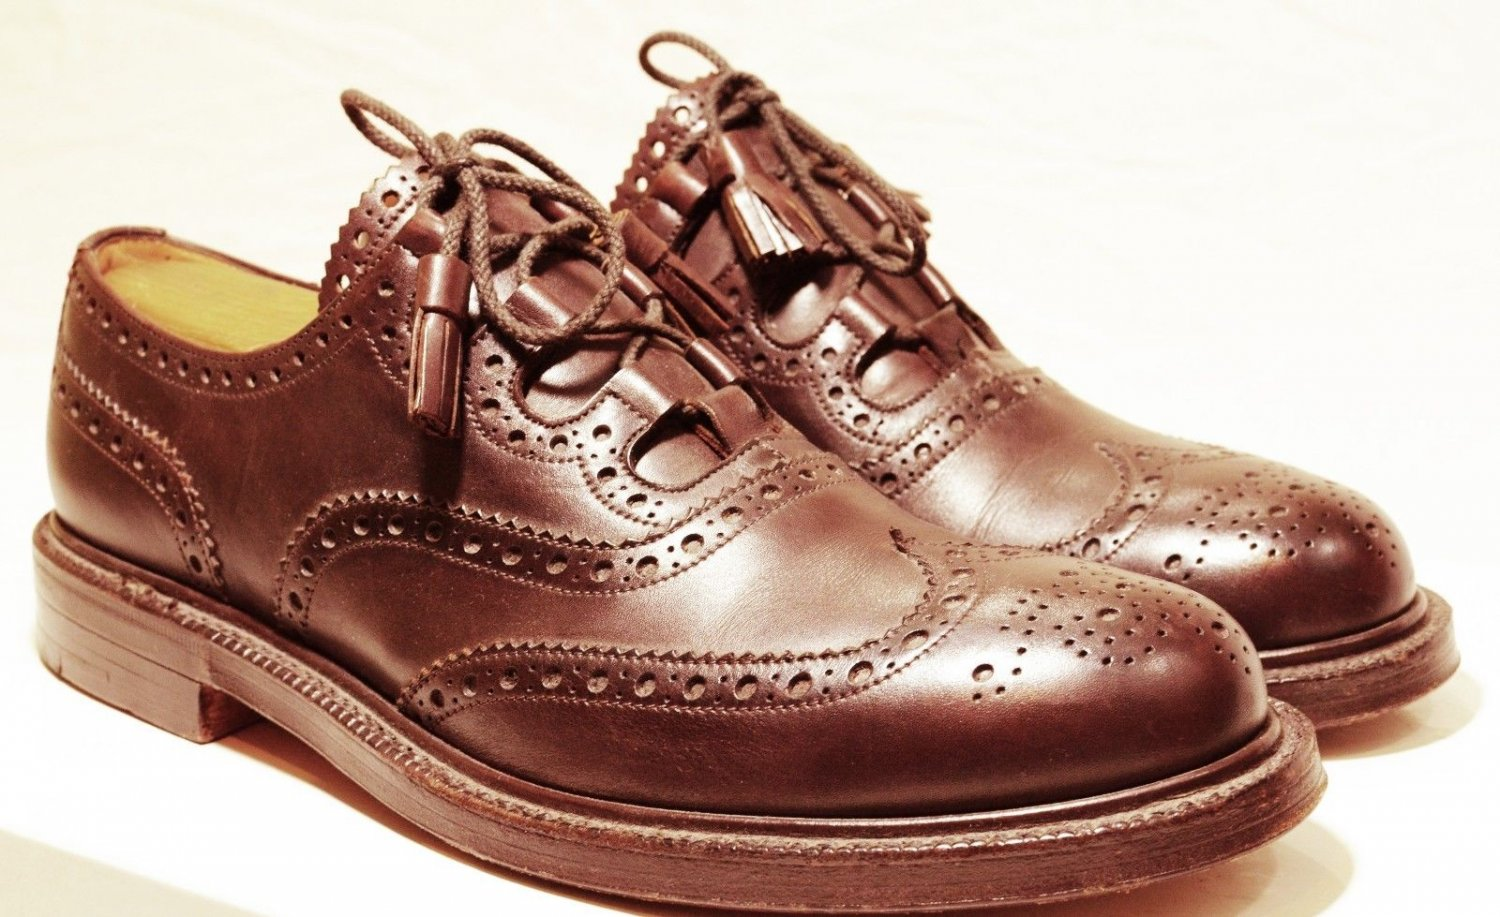 UK Size 12 Ghillie Brogues Kilt Leather Shoes Stitched Leather Sole with long lasses